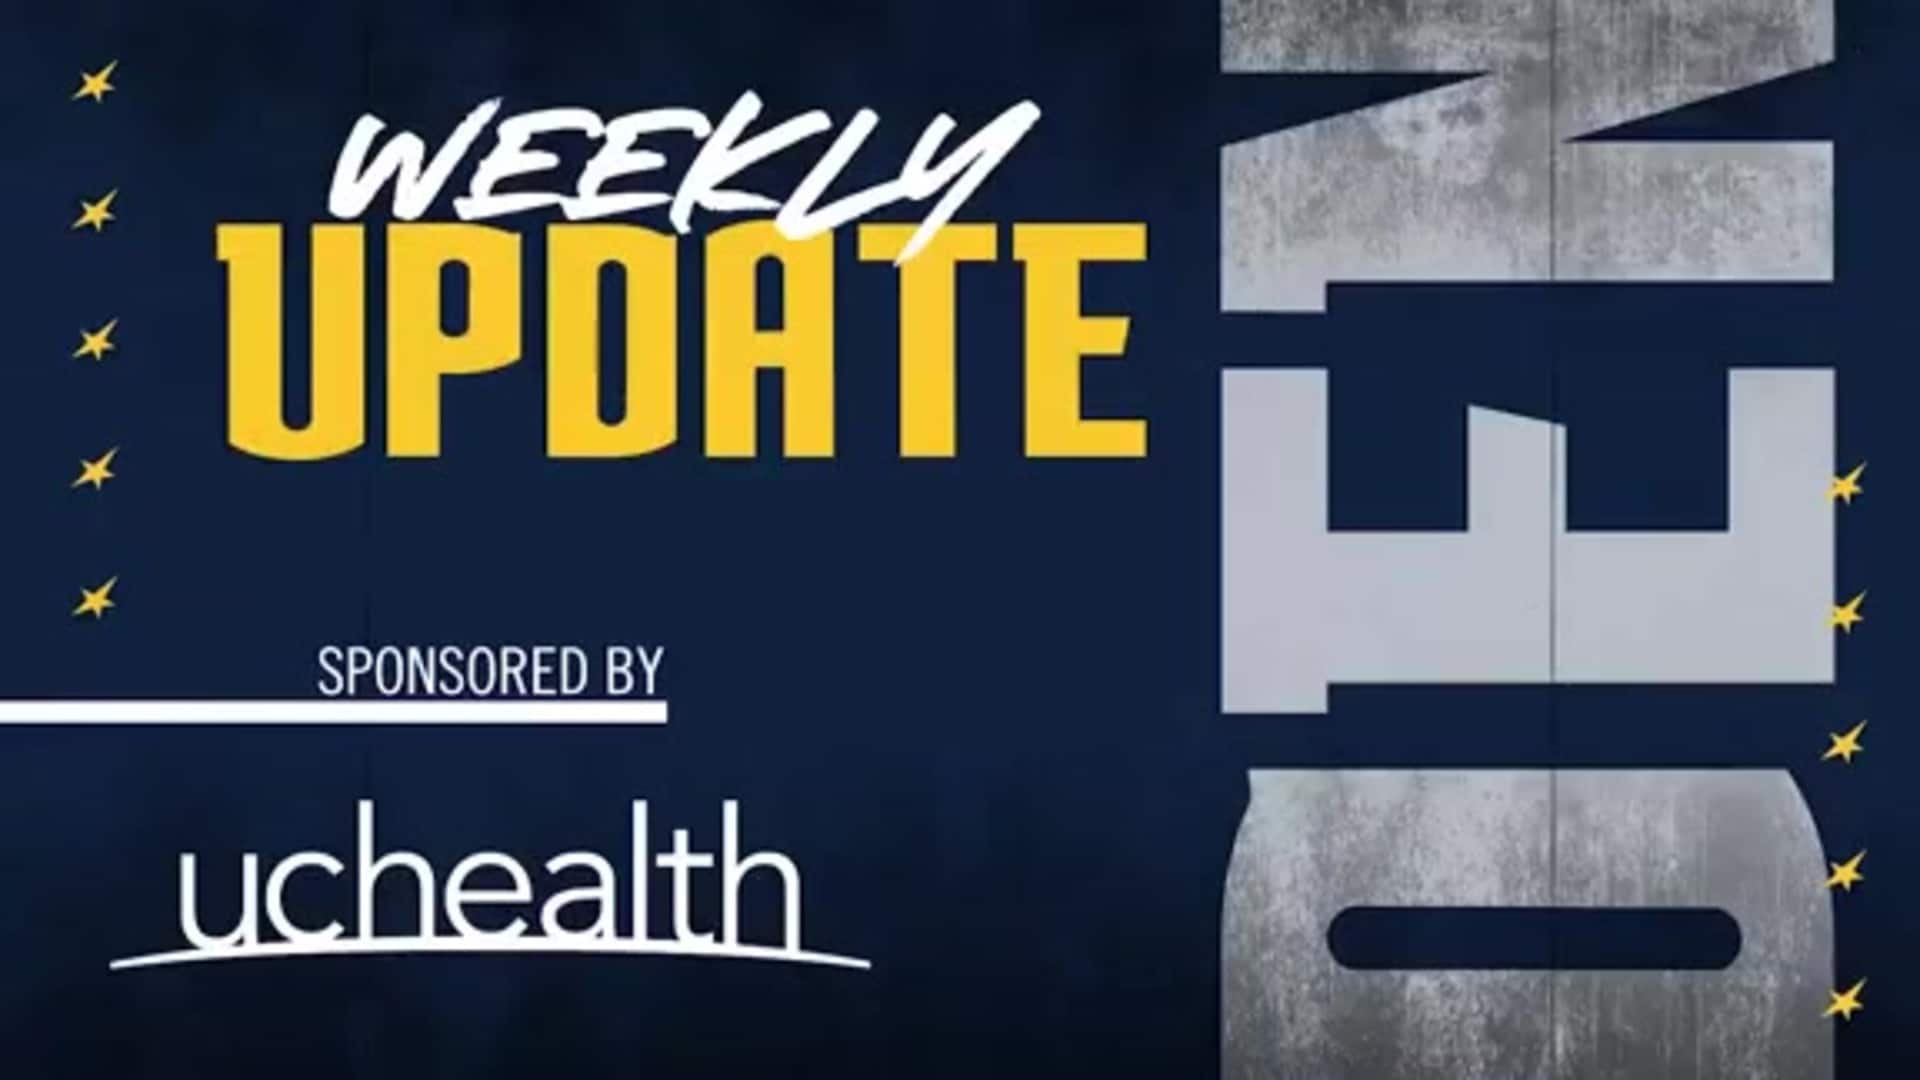 UCHealth Weekly Update | November 16